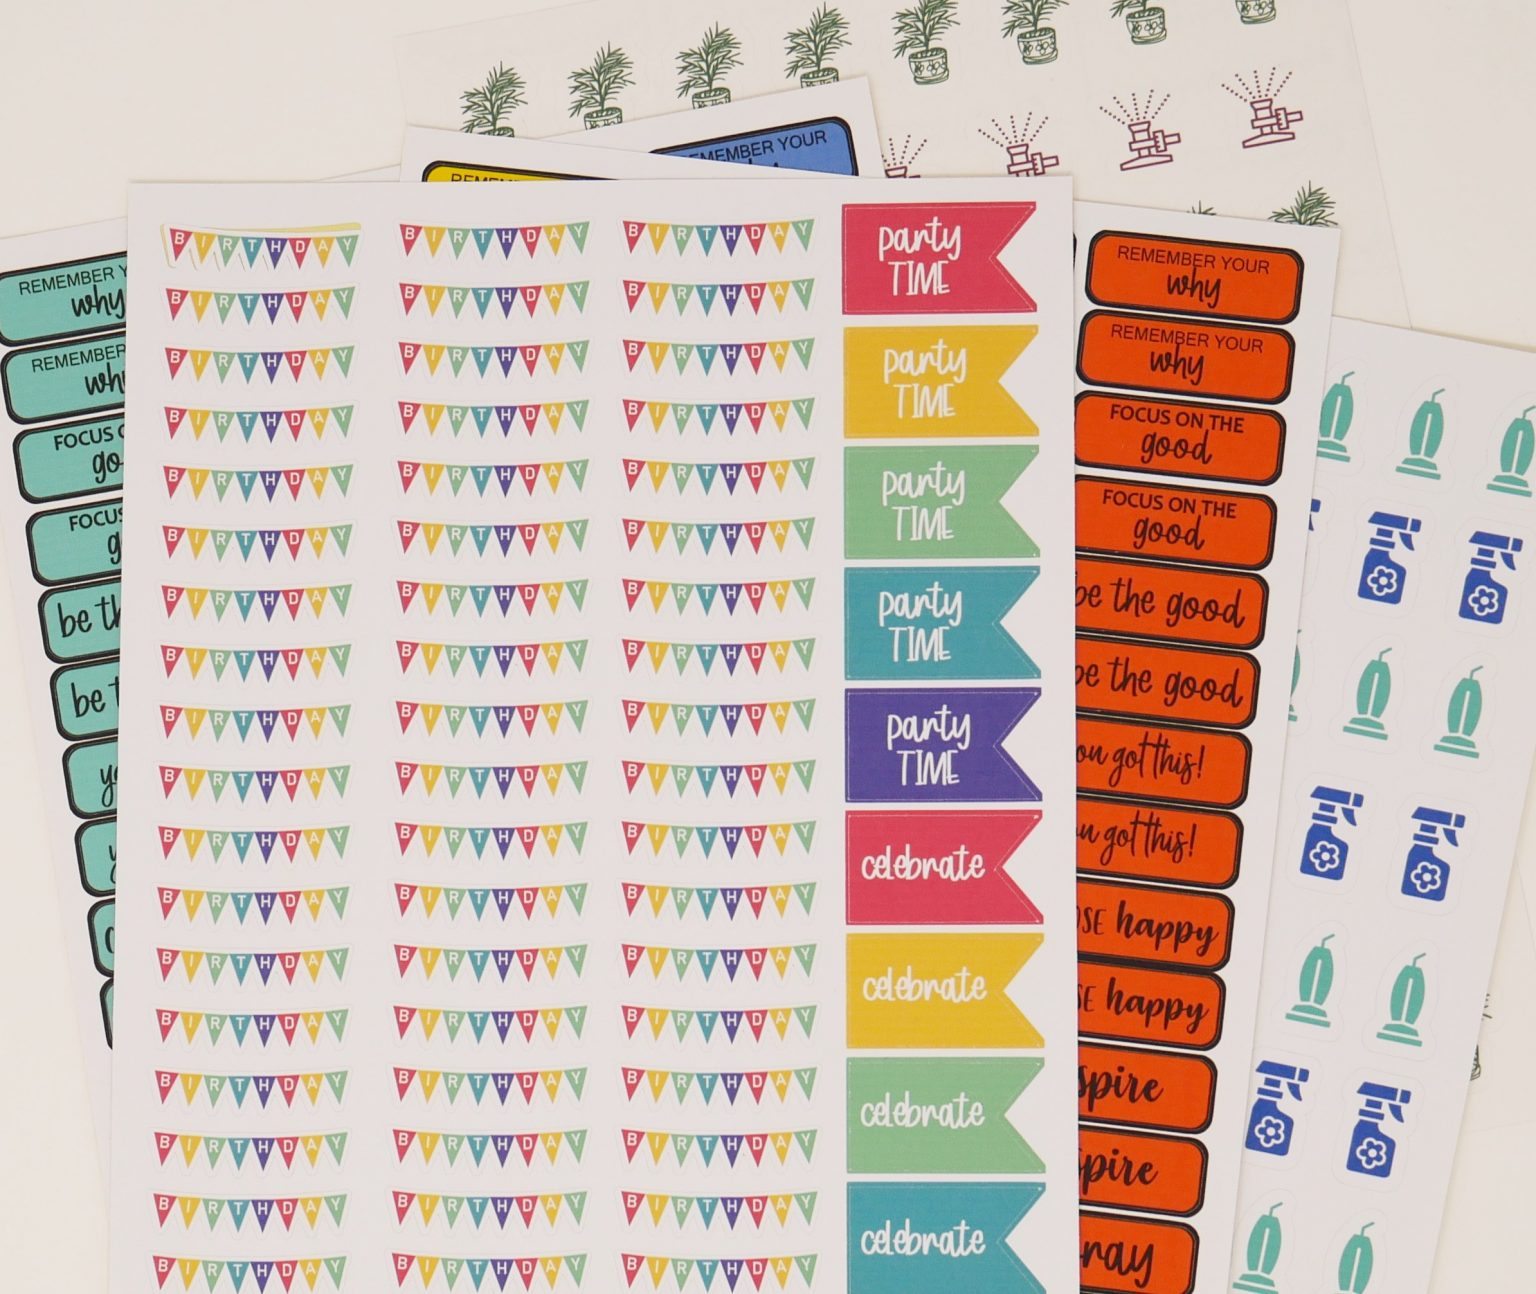 7 FREE Print and Cut Stickers to use with your Cricut.